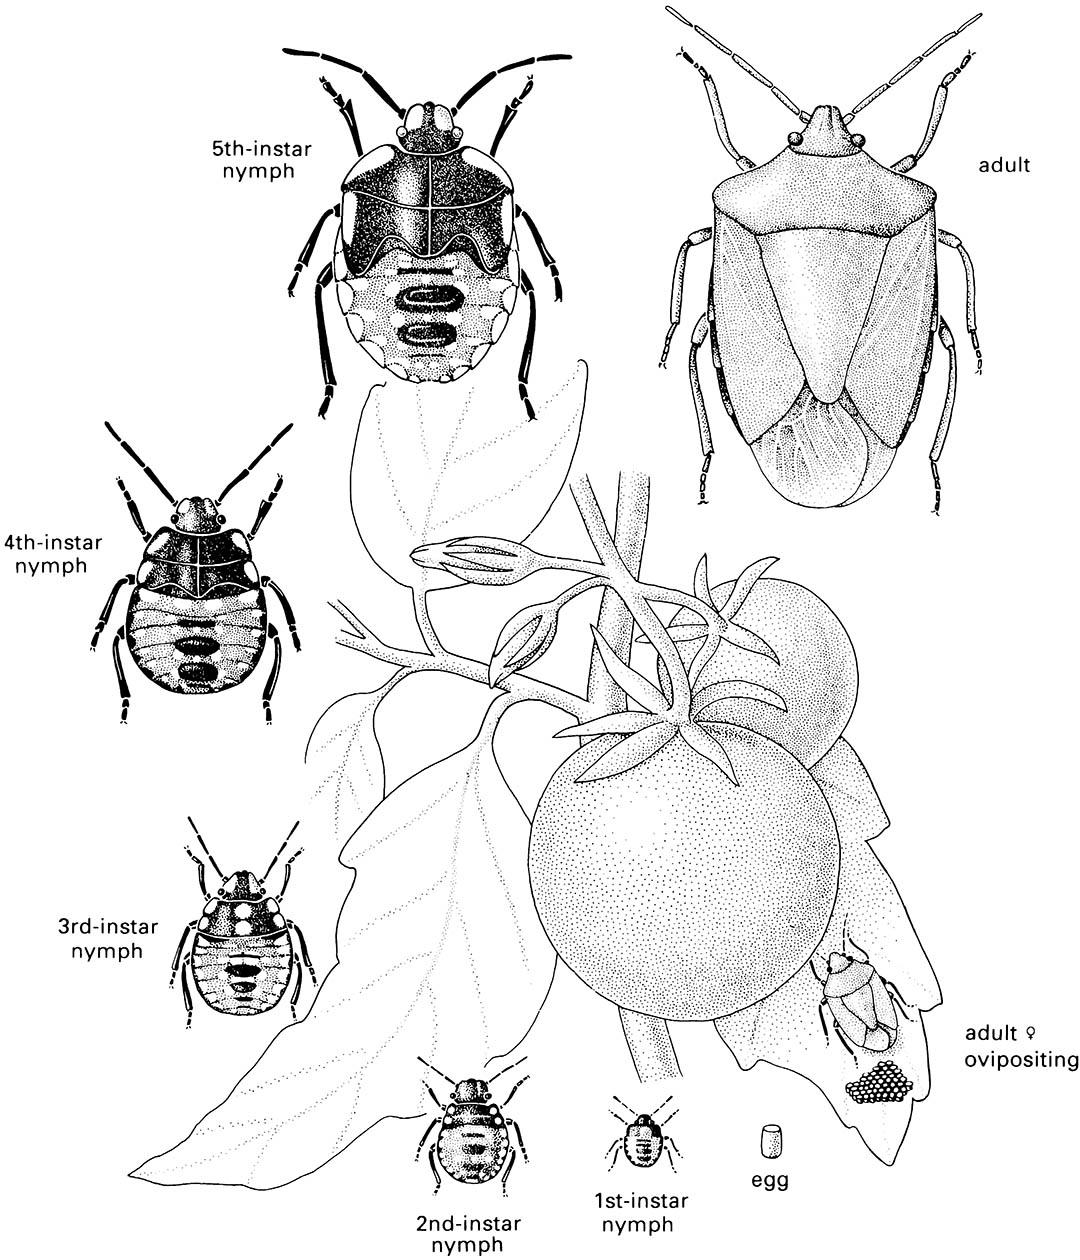 The life cycle of a hemimetabolous insect, the southern green stink bug or green vegetable bug, Nezara viridula (Hemiptera: Pentatomidae), showing the eggs, nymphs of the five instars, and the adult bug on a tomato plant.